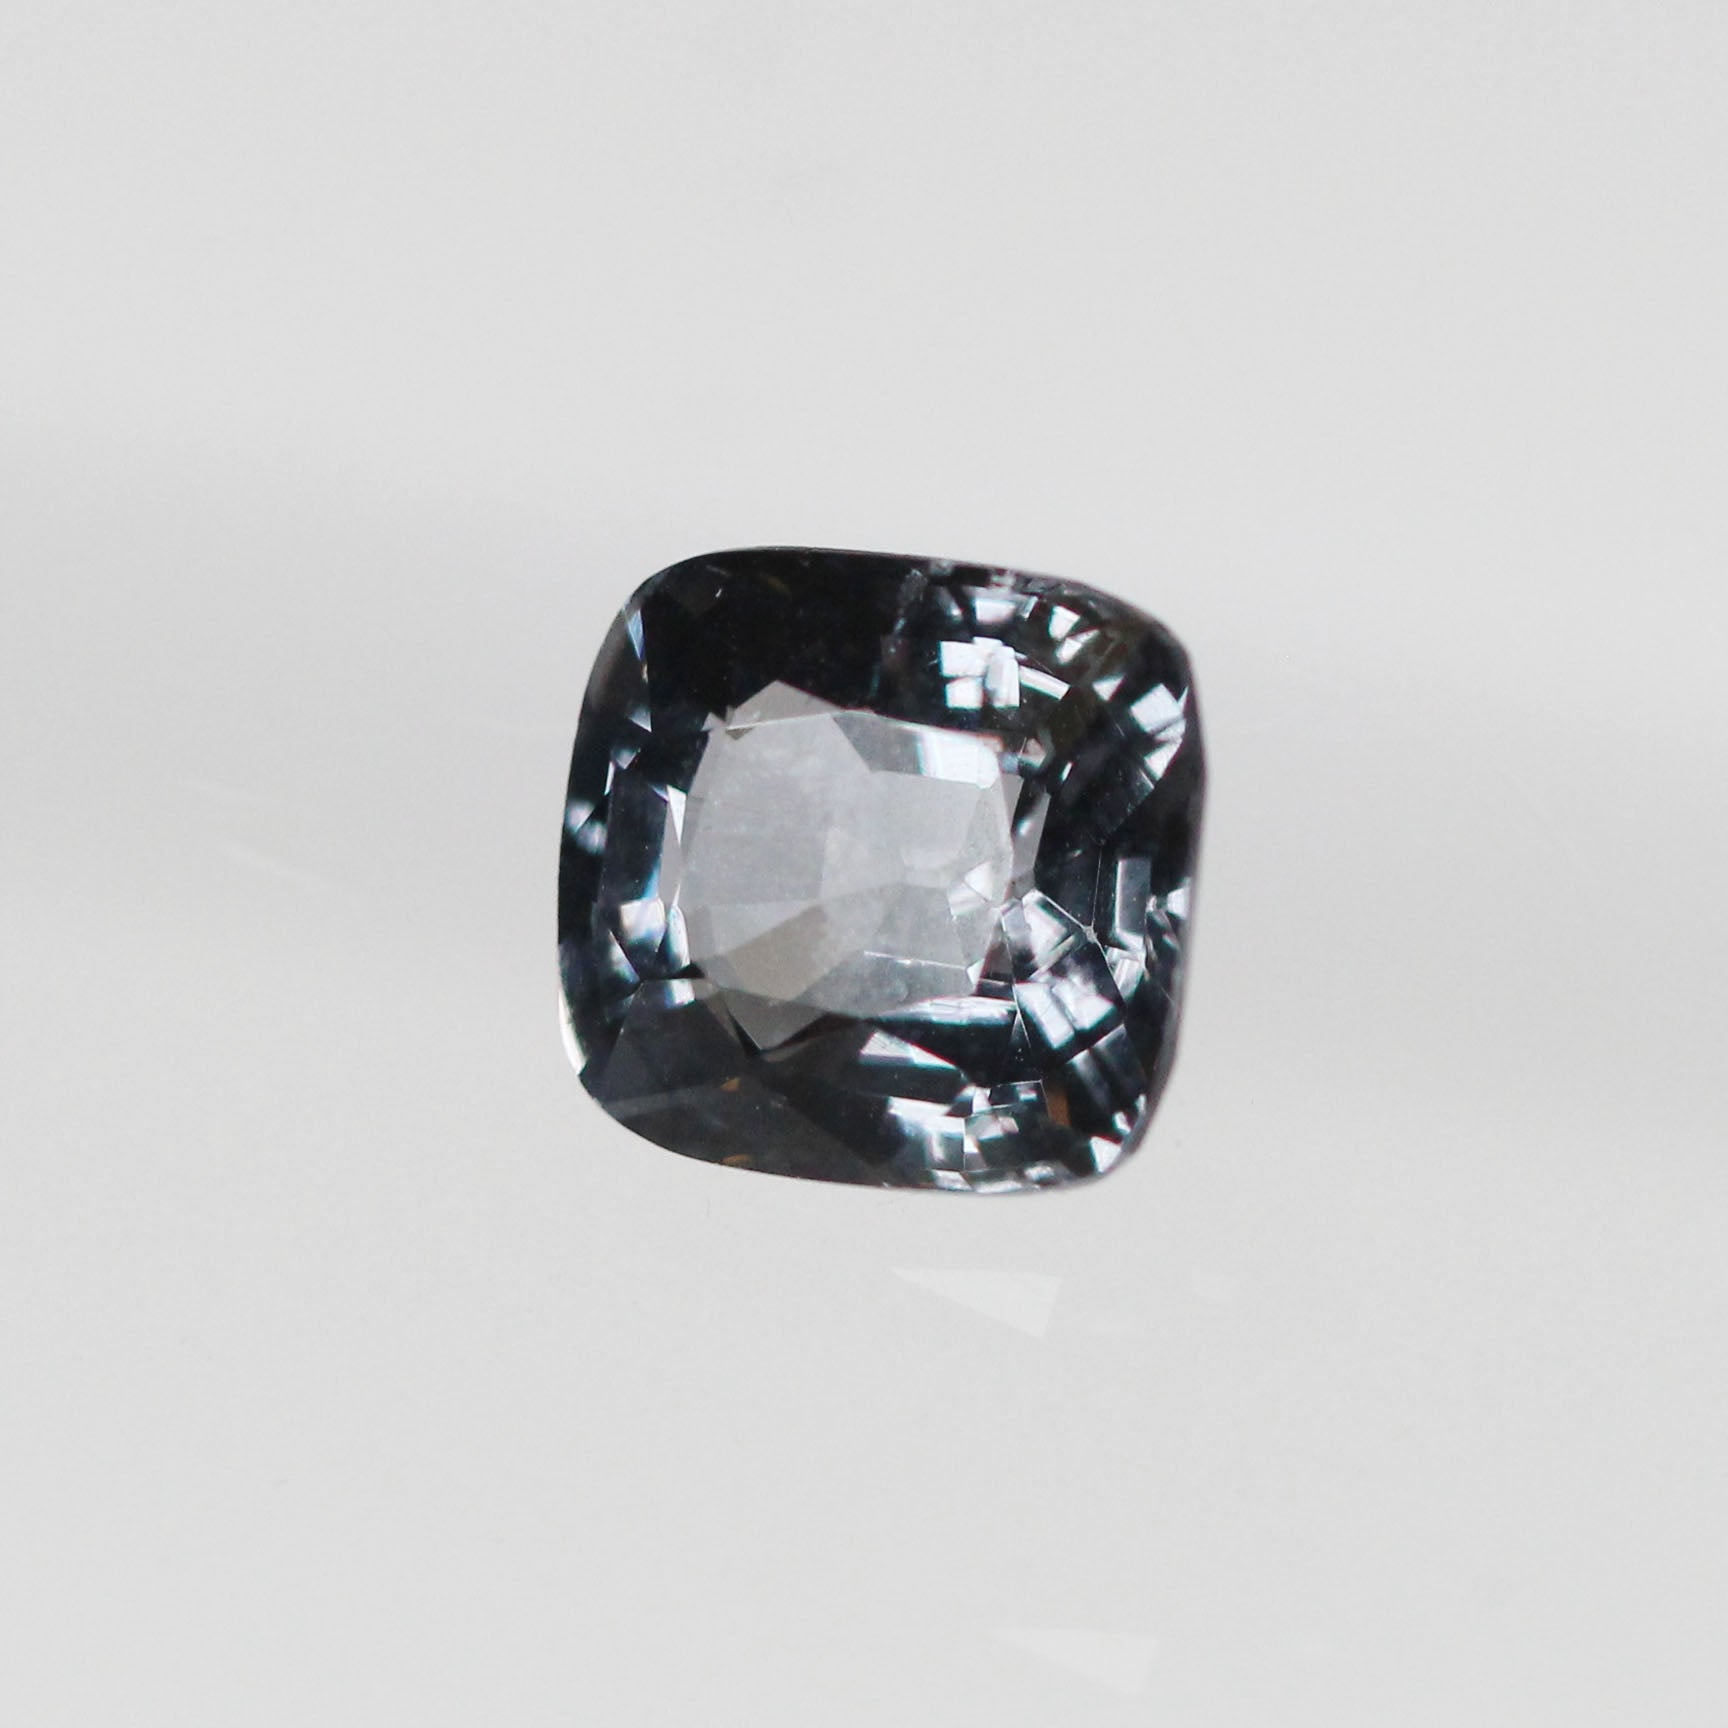 1.40 Carat Cushion Spinel for Custom Work - Inventory Code CBSP140 - Celestial Diamonds ® by Midwinter Co.